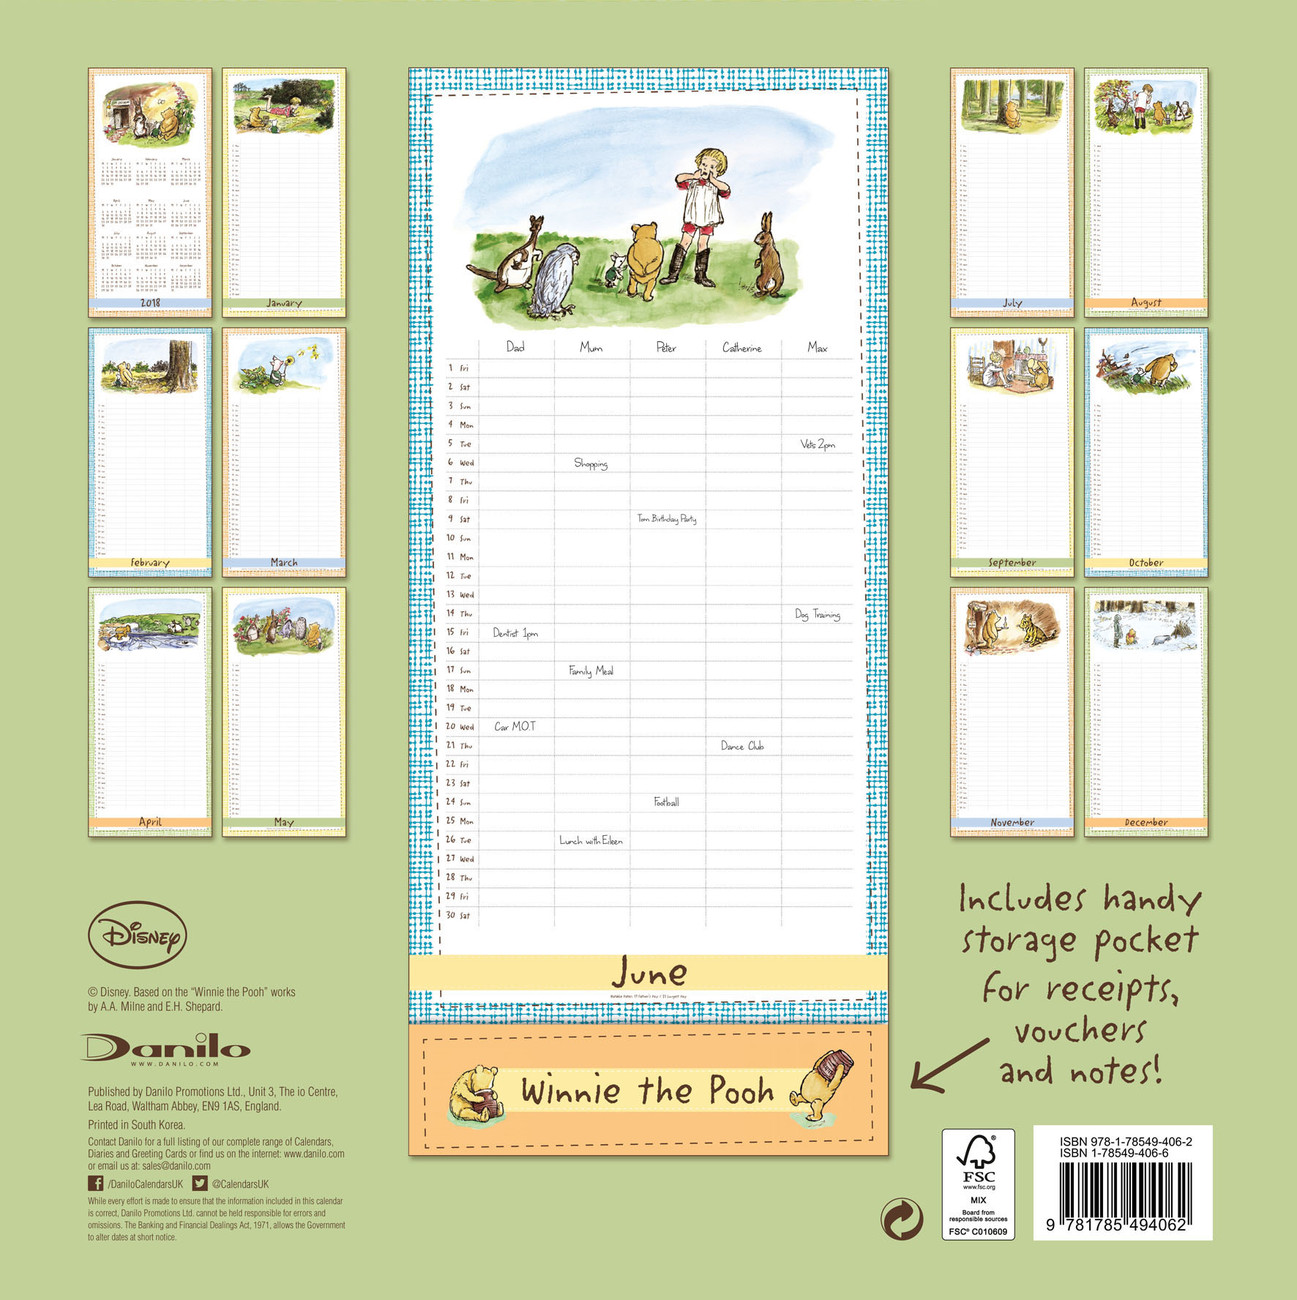 Winnie The Pooh - Calendars 2021 on UKposters/Abposters.com